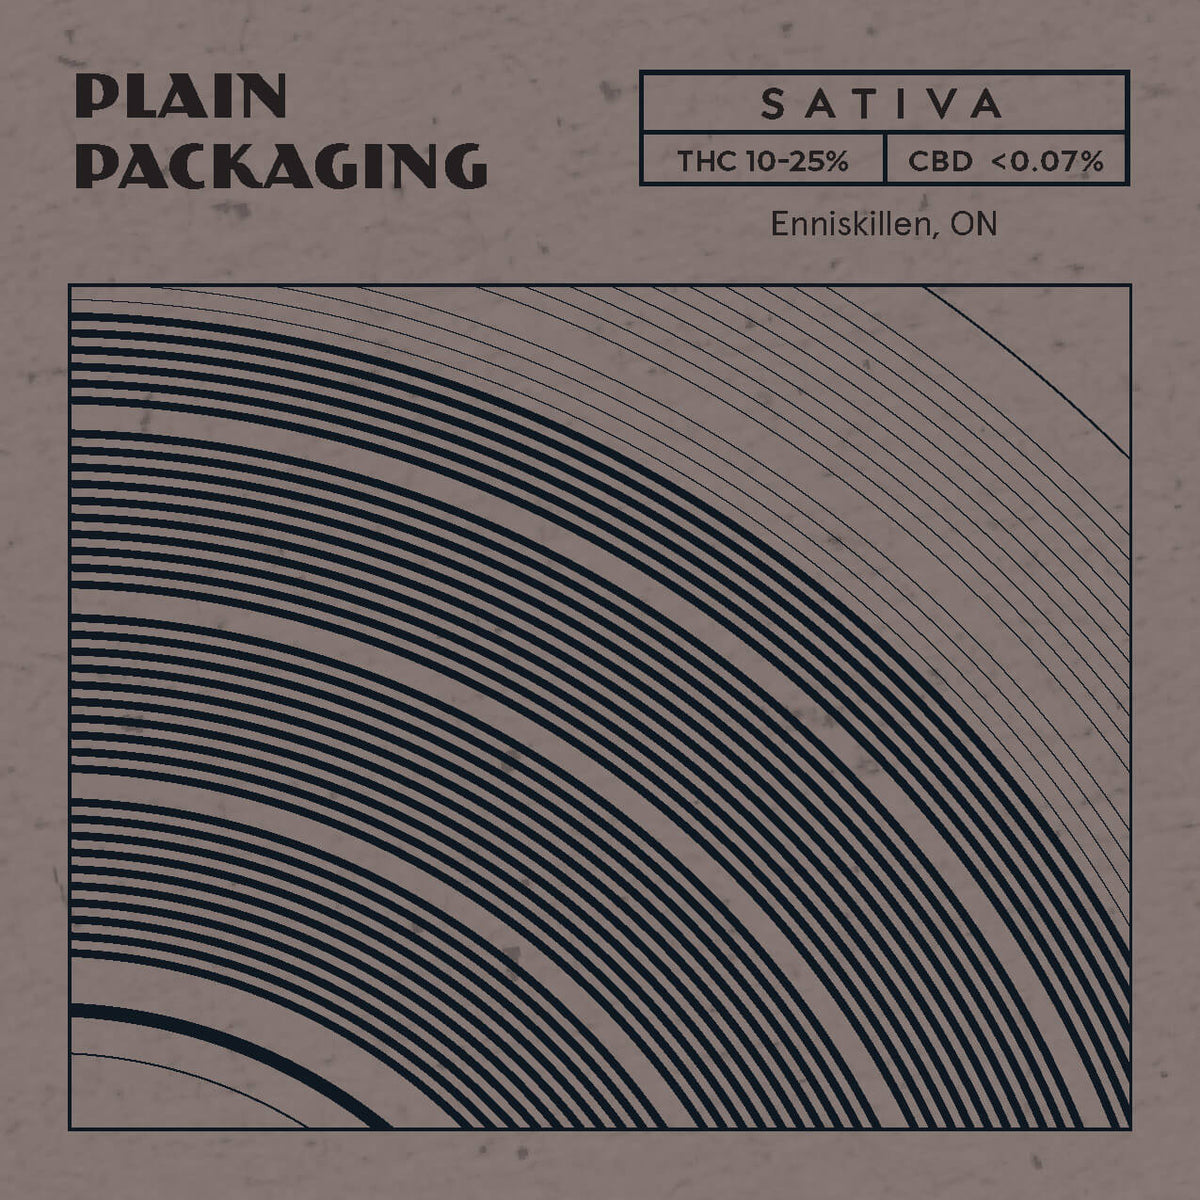 Plain Packaging - Sativa